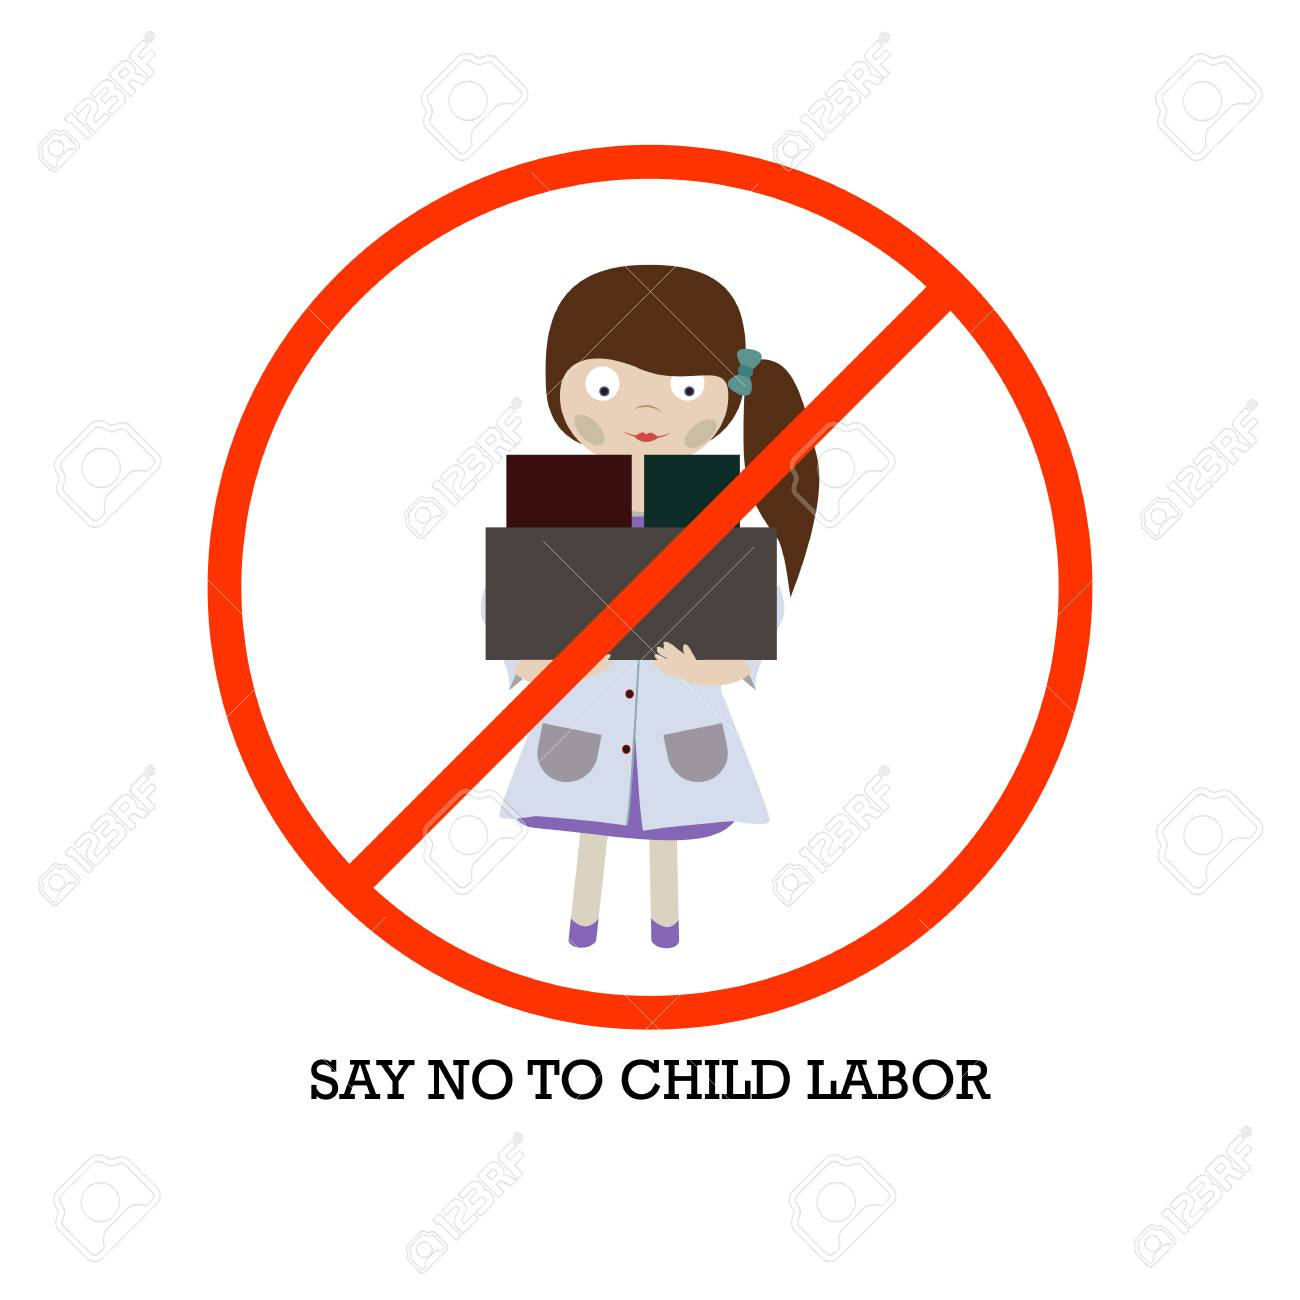 Concept for a World Day Against Child Labour, vector on isolated background - 102394930